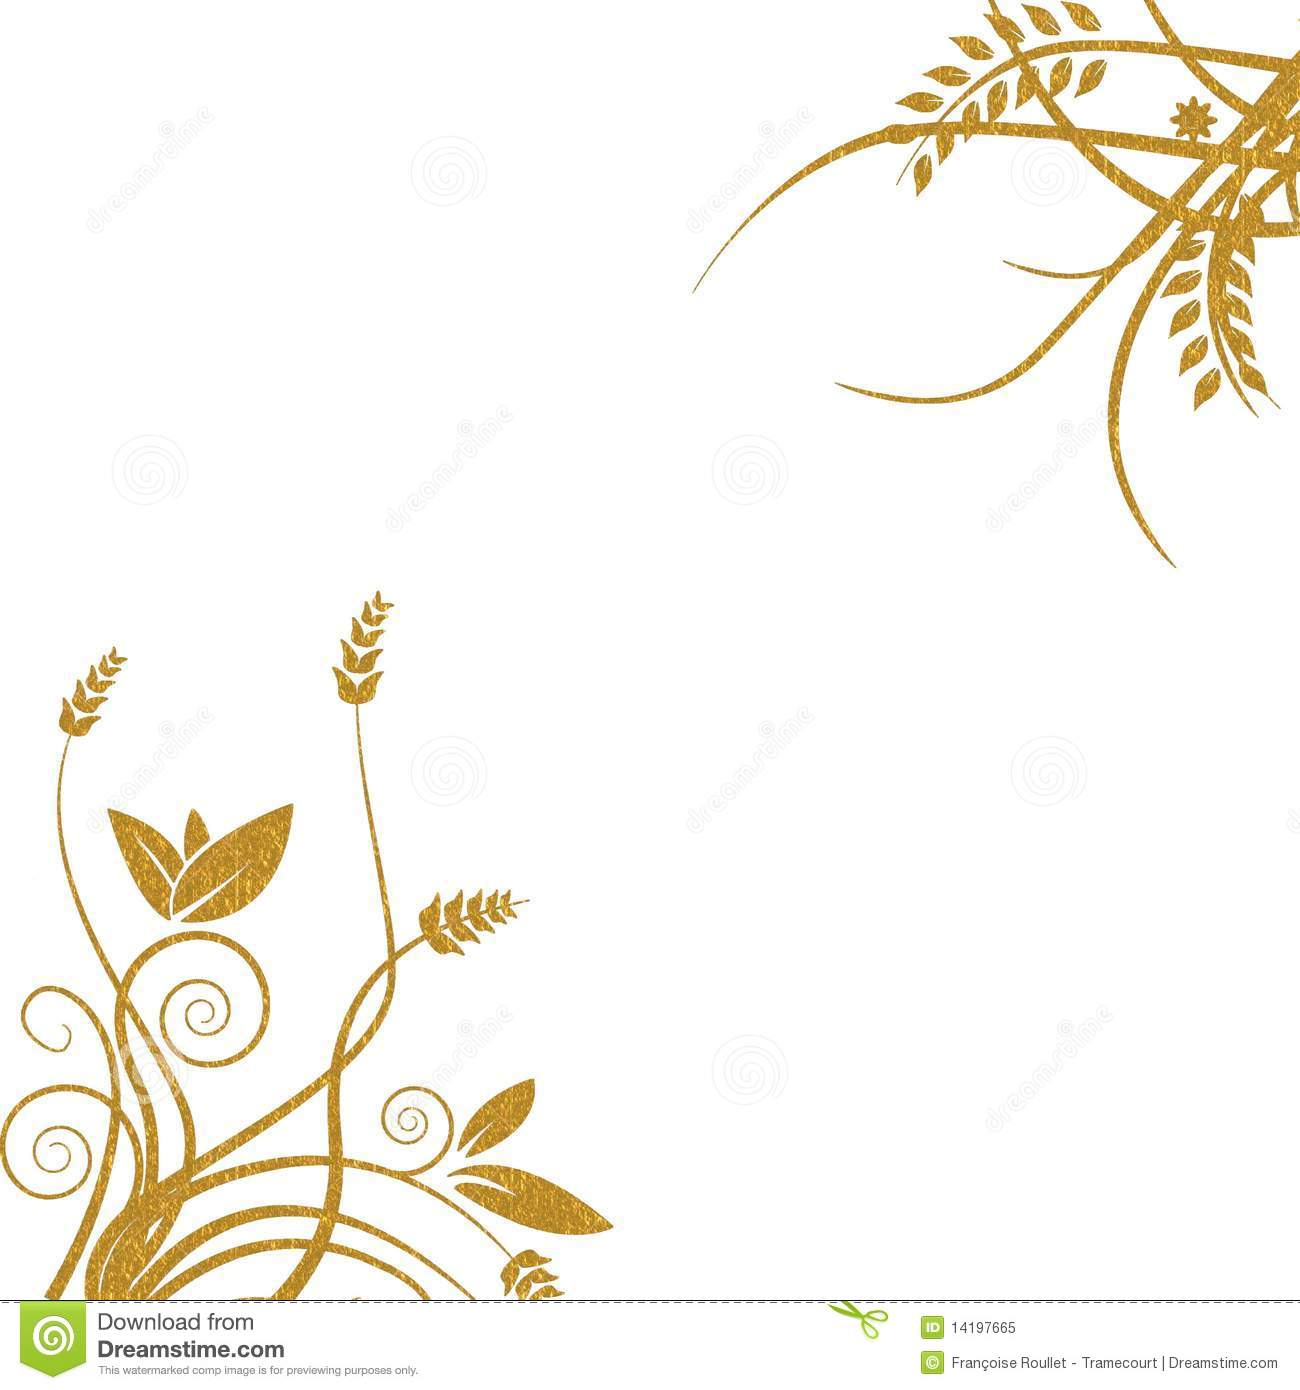 Cute Wallpapers Green Mint Gold Floral Background Royalty Free Stock Photo Image